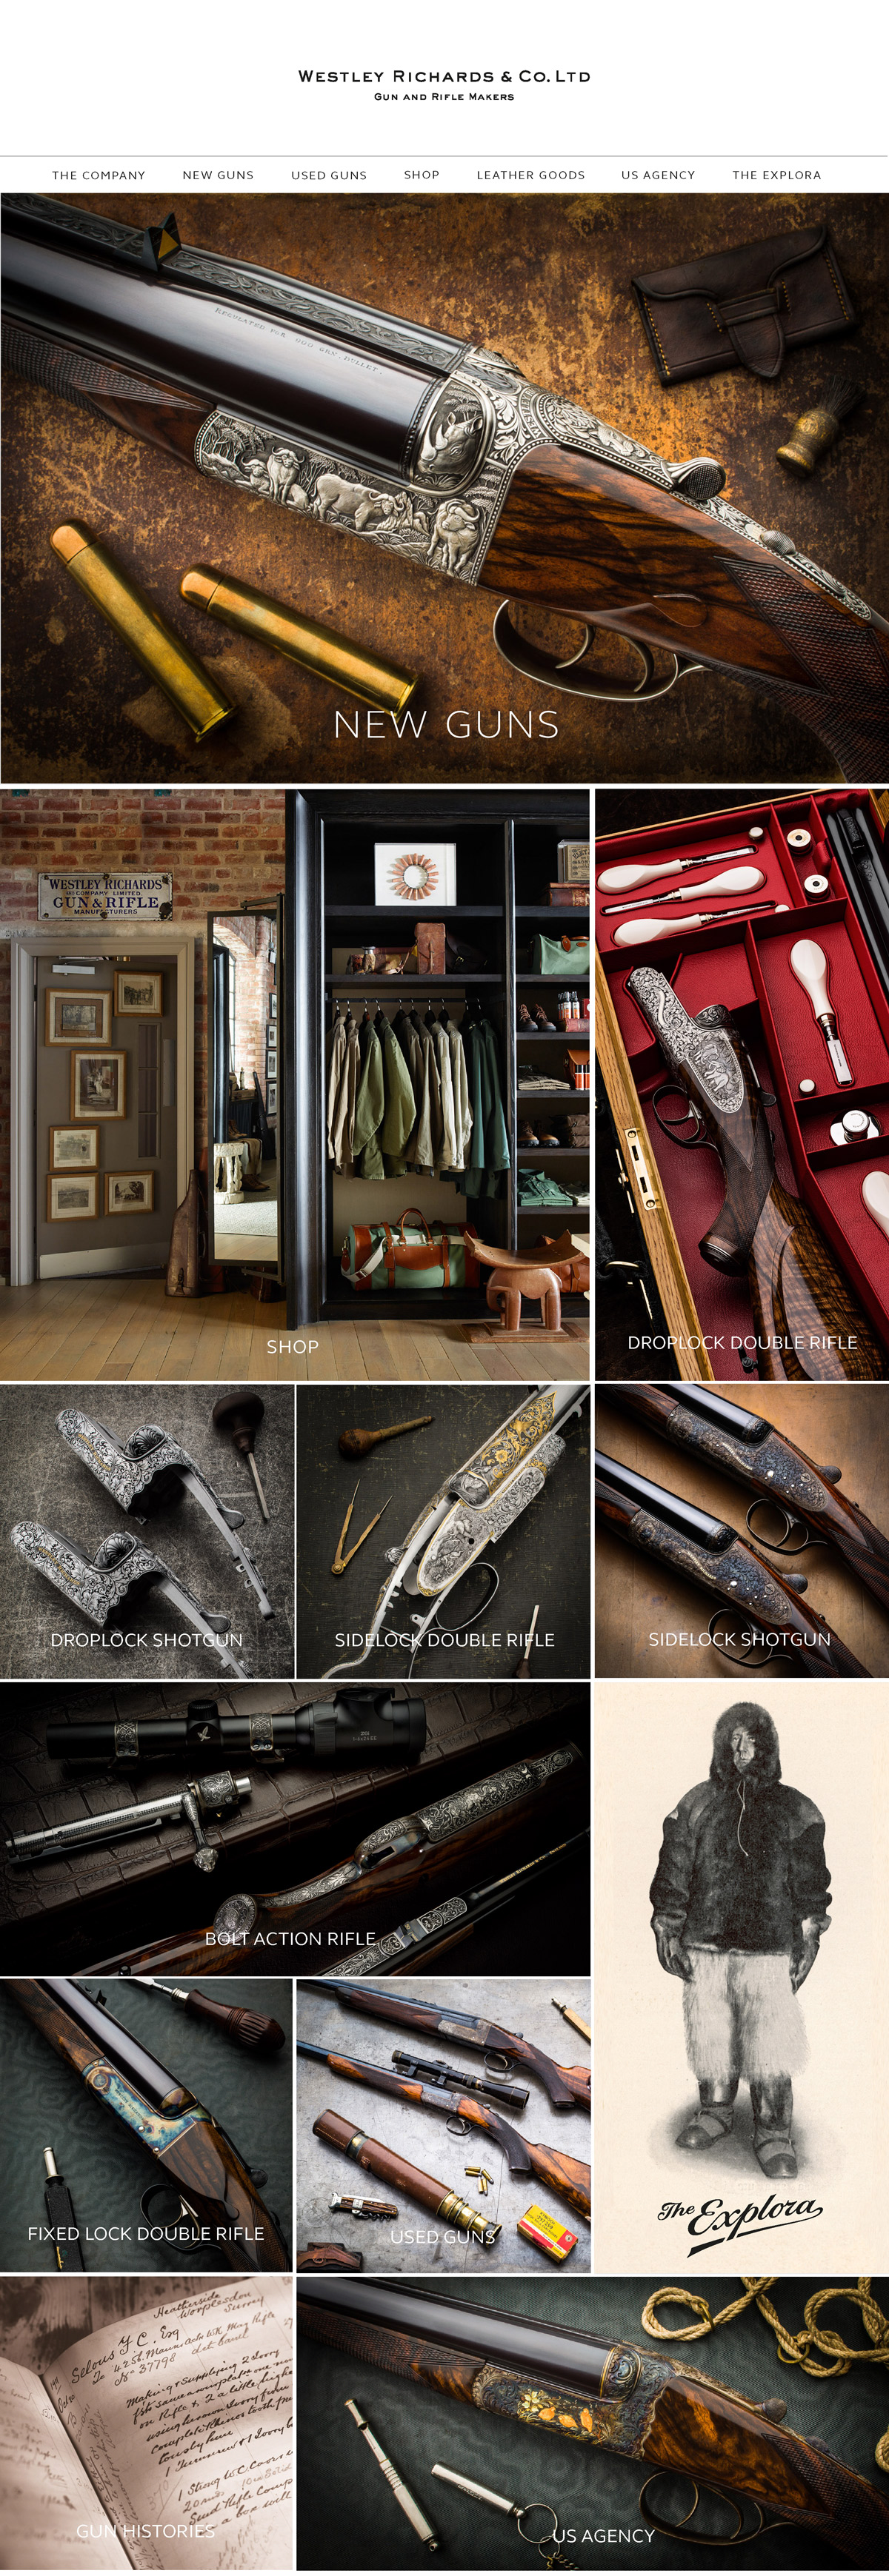 New Westley Richards Website Launch